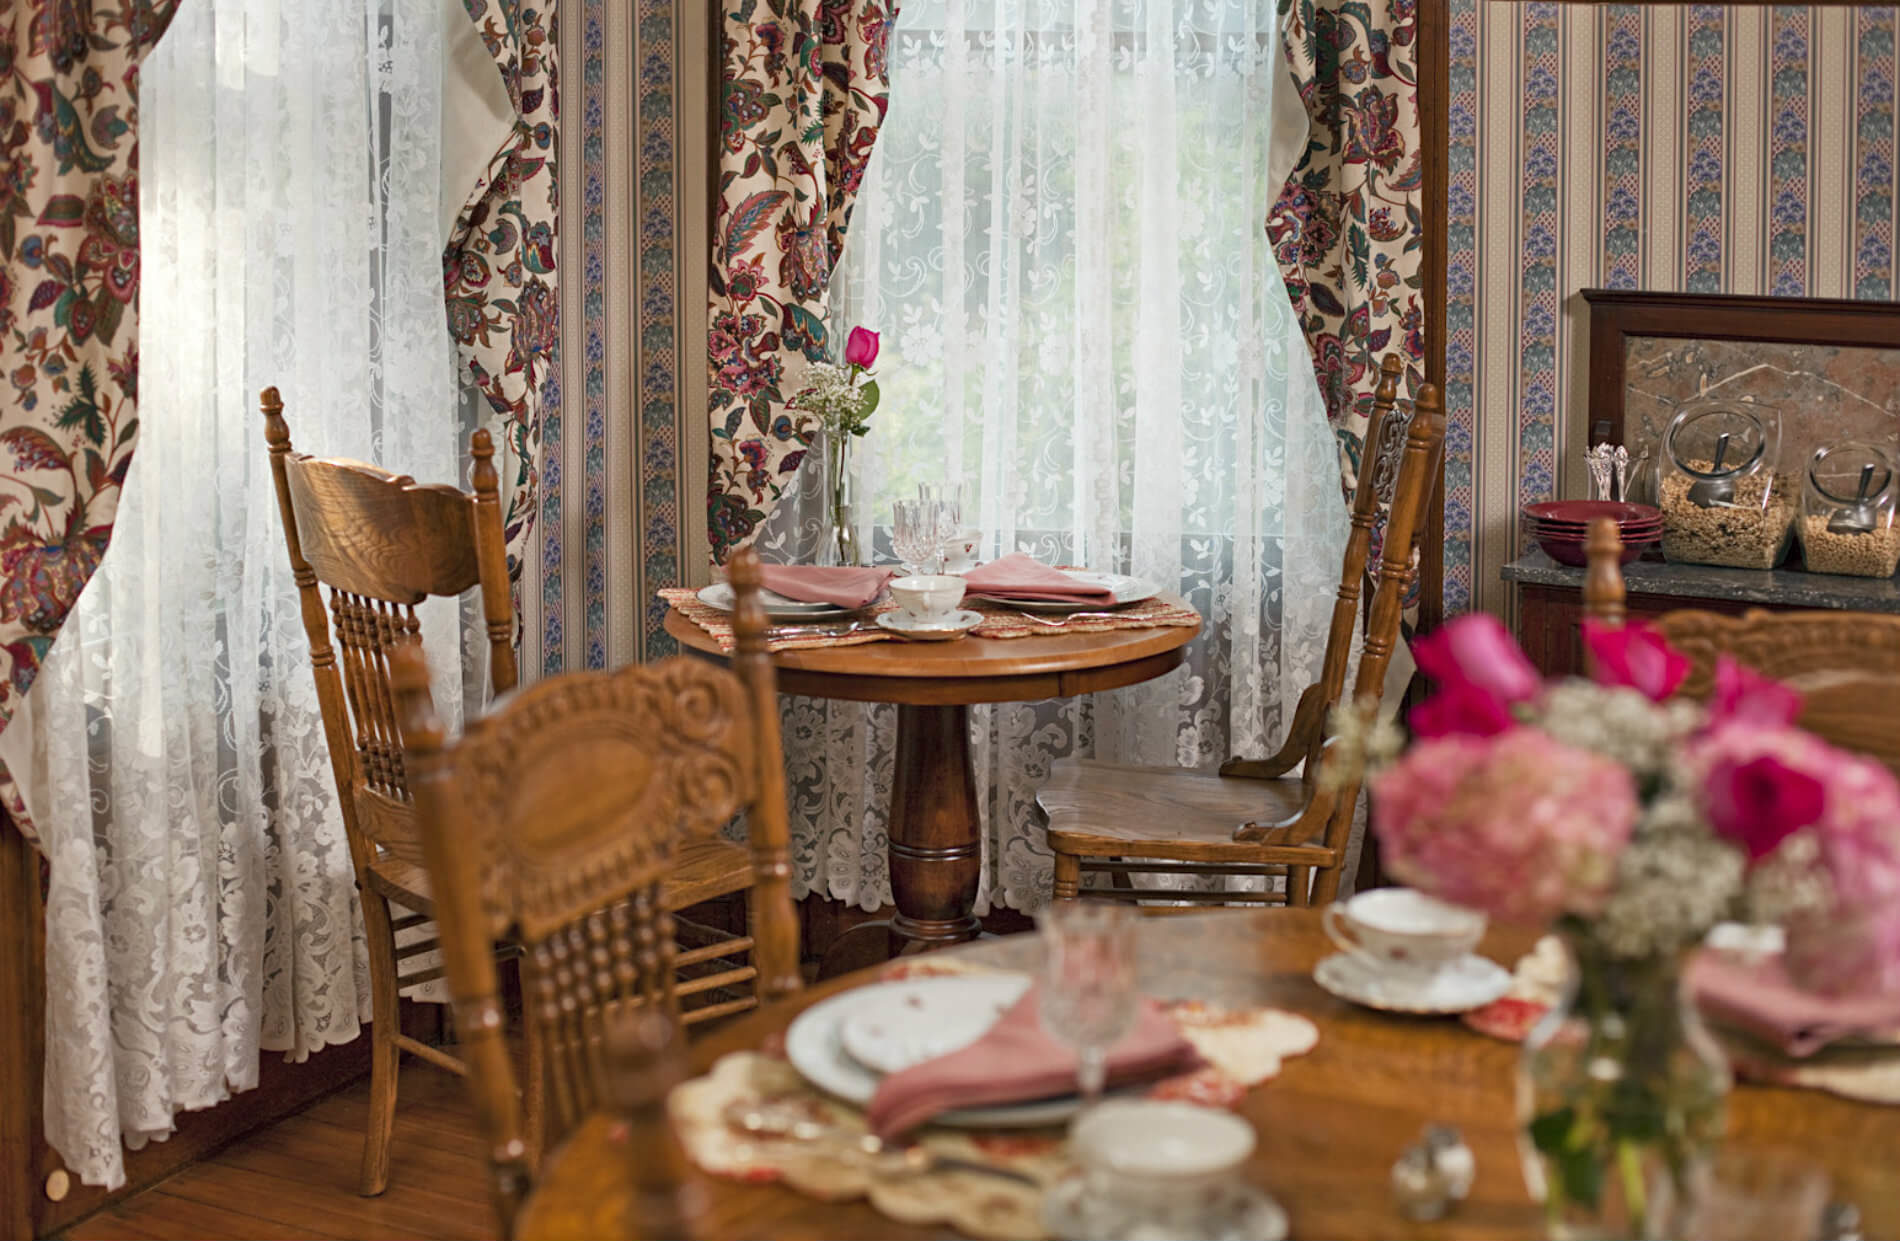 Wooden tables with plates and tea cups with a floral pattern